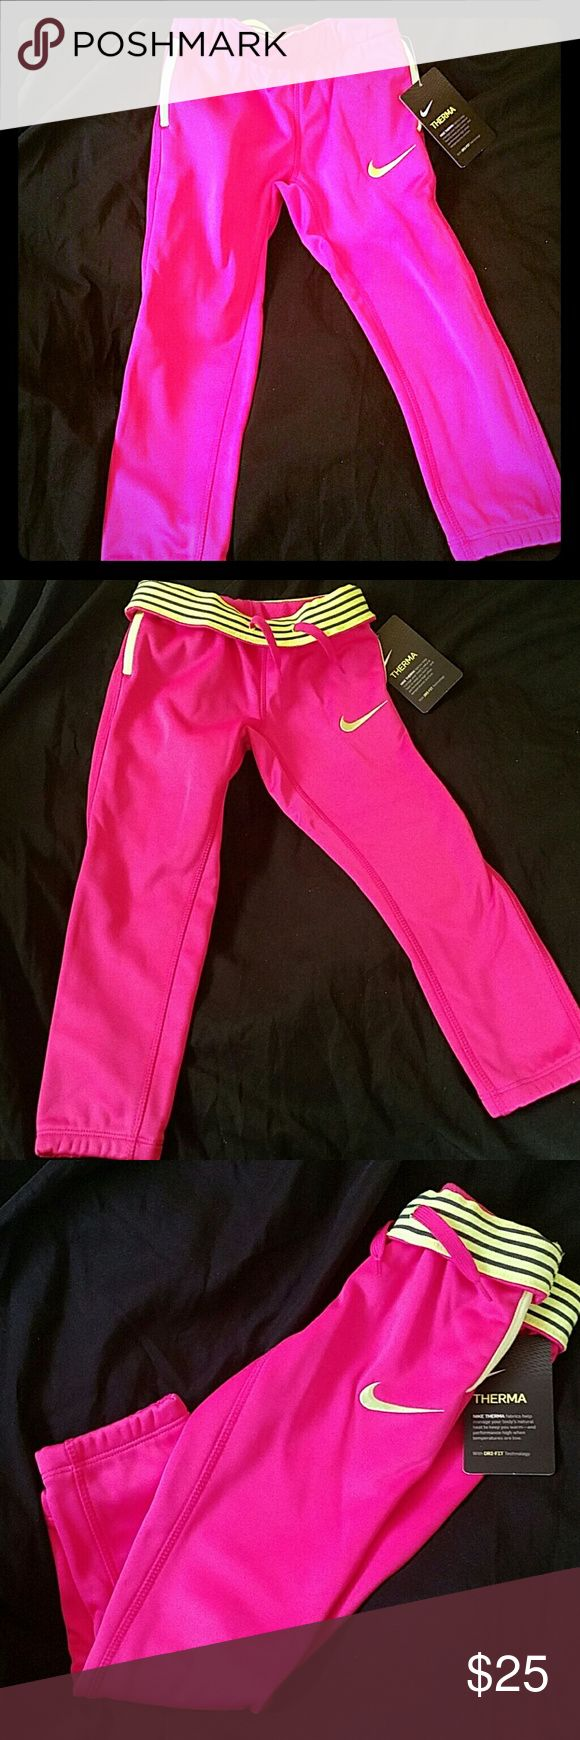 NWT Girls Nike Dri Fit Pants size 4 to 4t-5t pink Hot pink and super cute neon yellow Girls Nike pants size 4t Brand new with tags and never worn Offers considered. Nike Bottoms